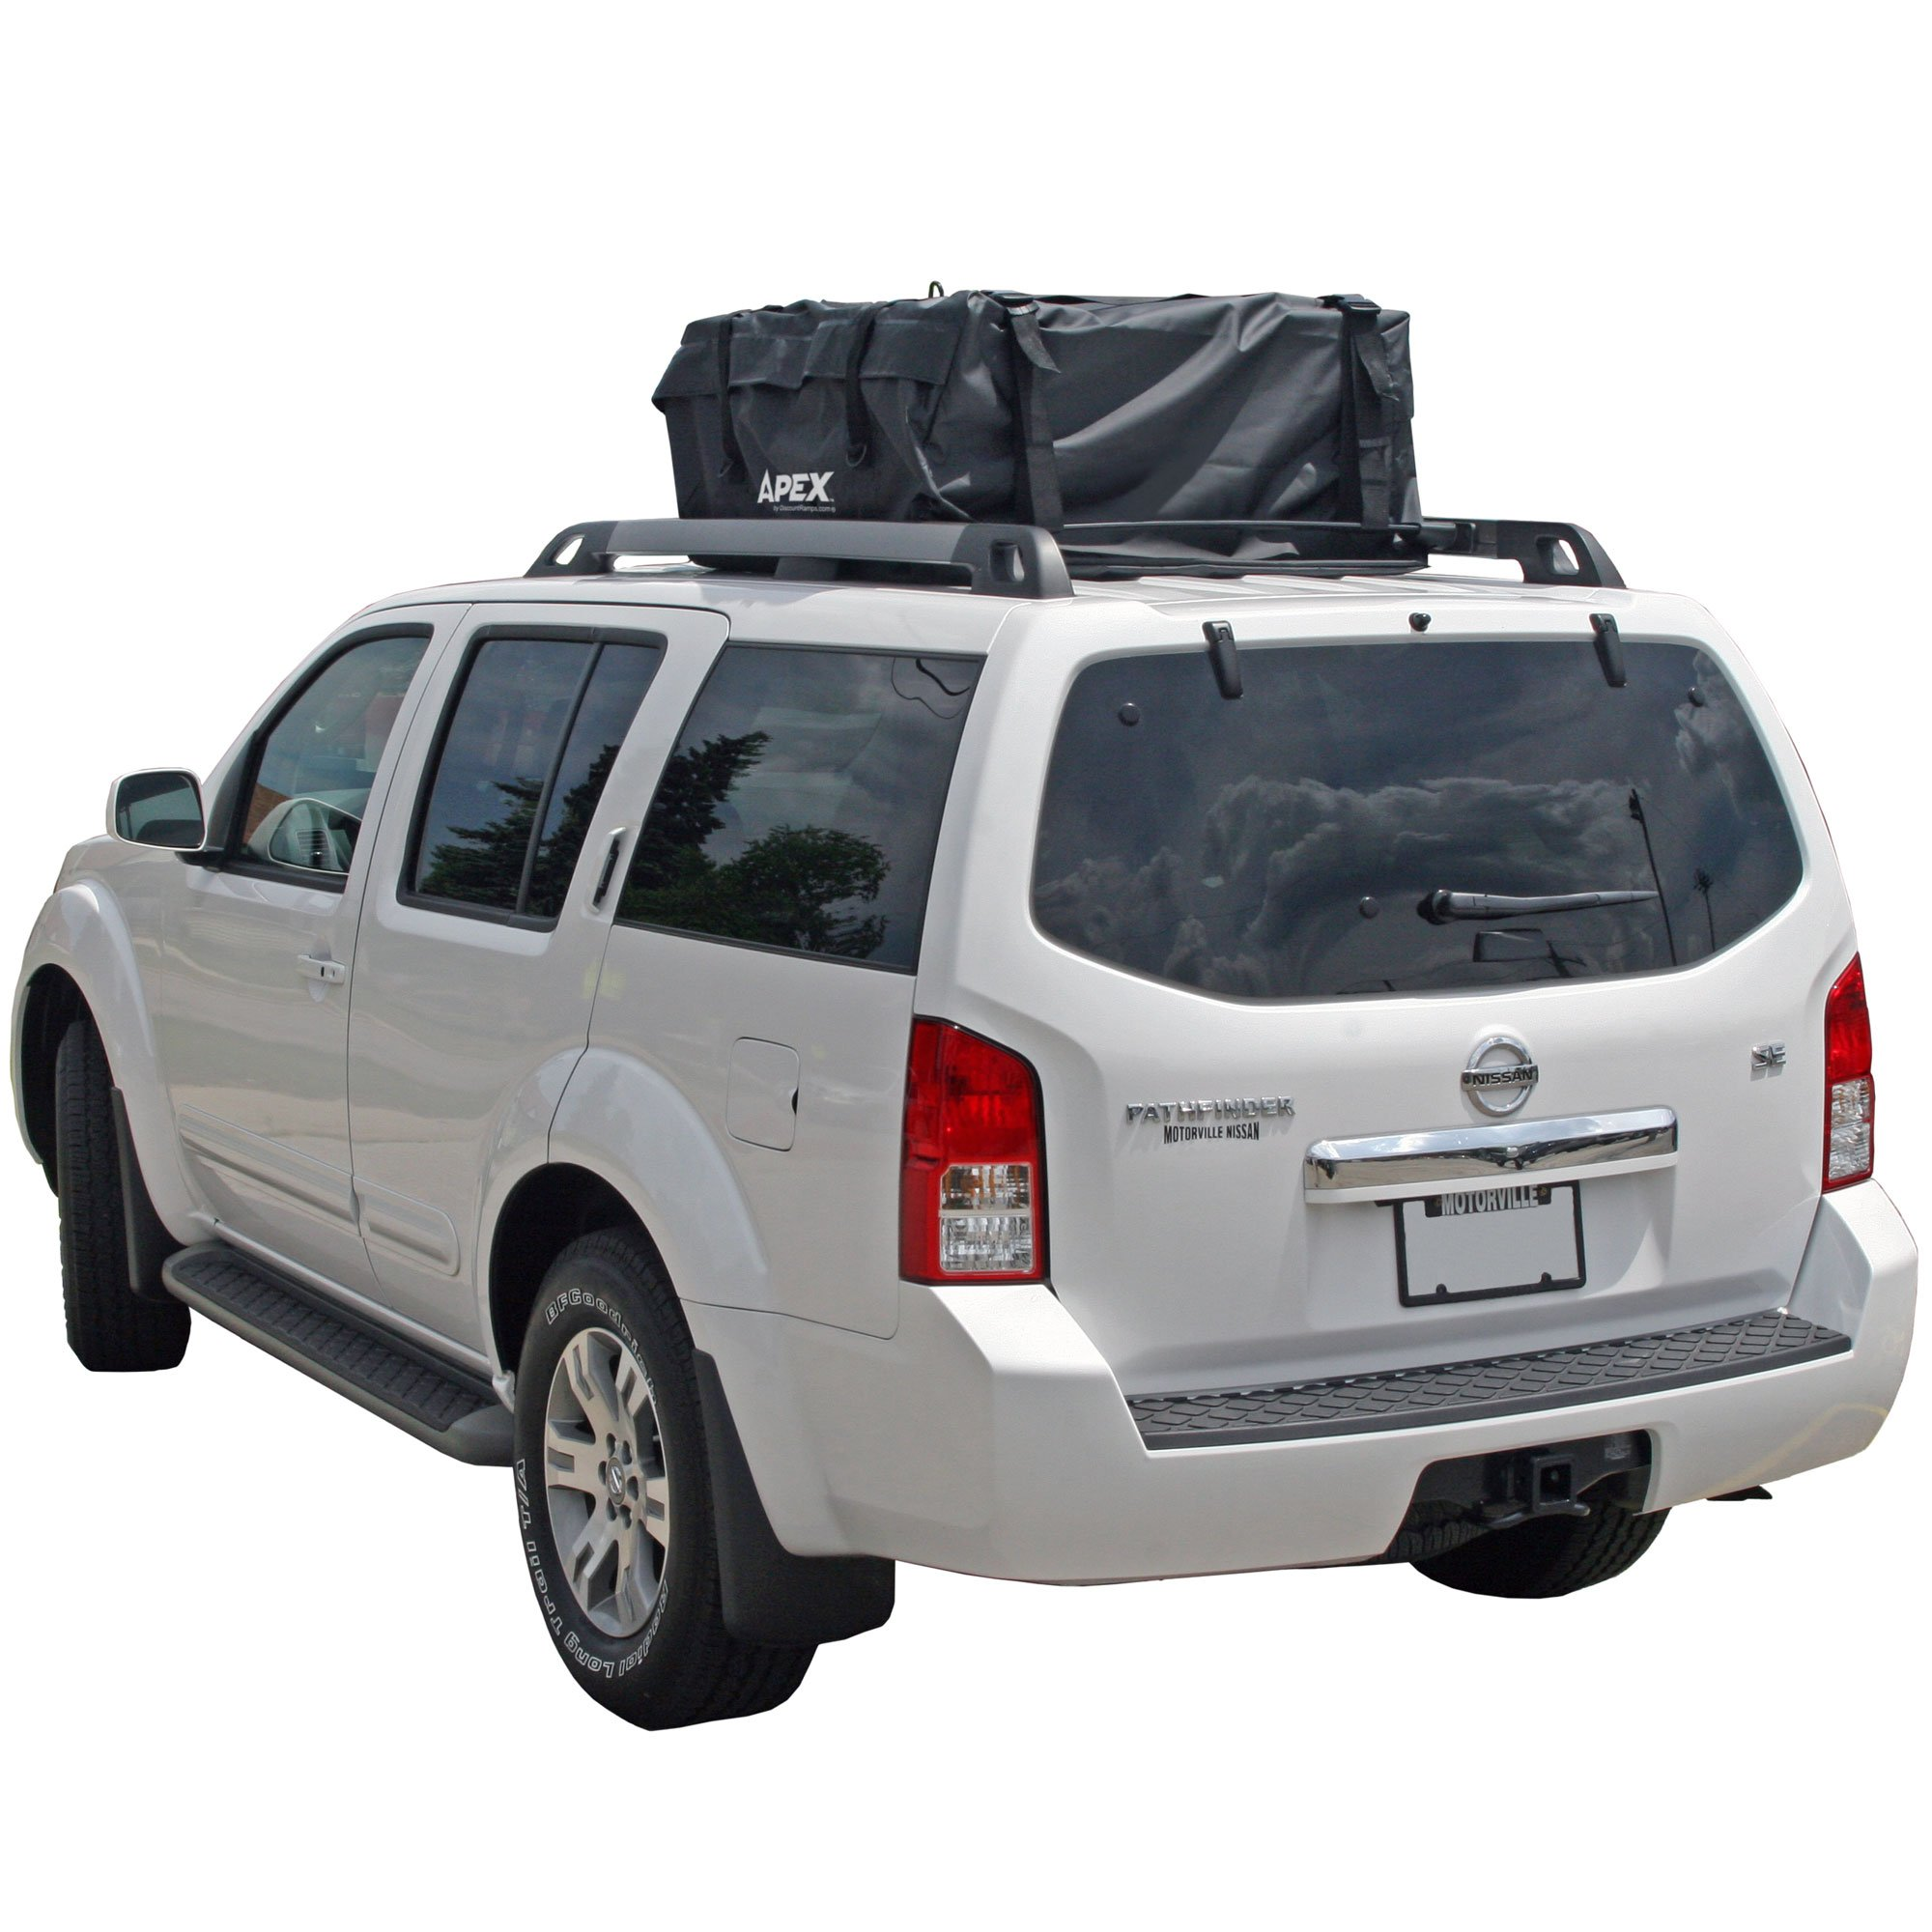 door the edmonton jk and wrangler platforms car rhino for alberta platform rack pioneer on jeep large racks backbone luggage